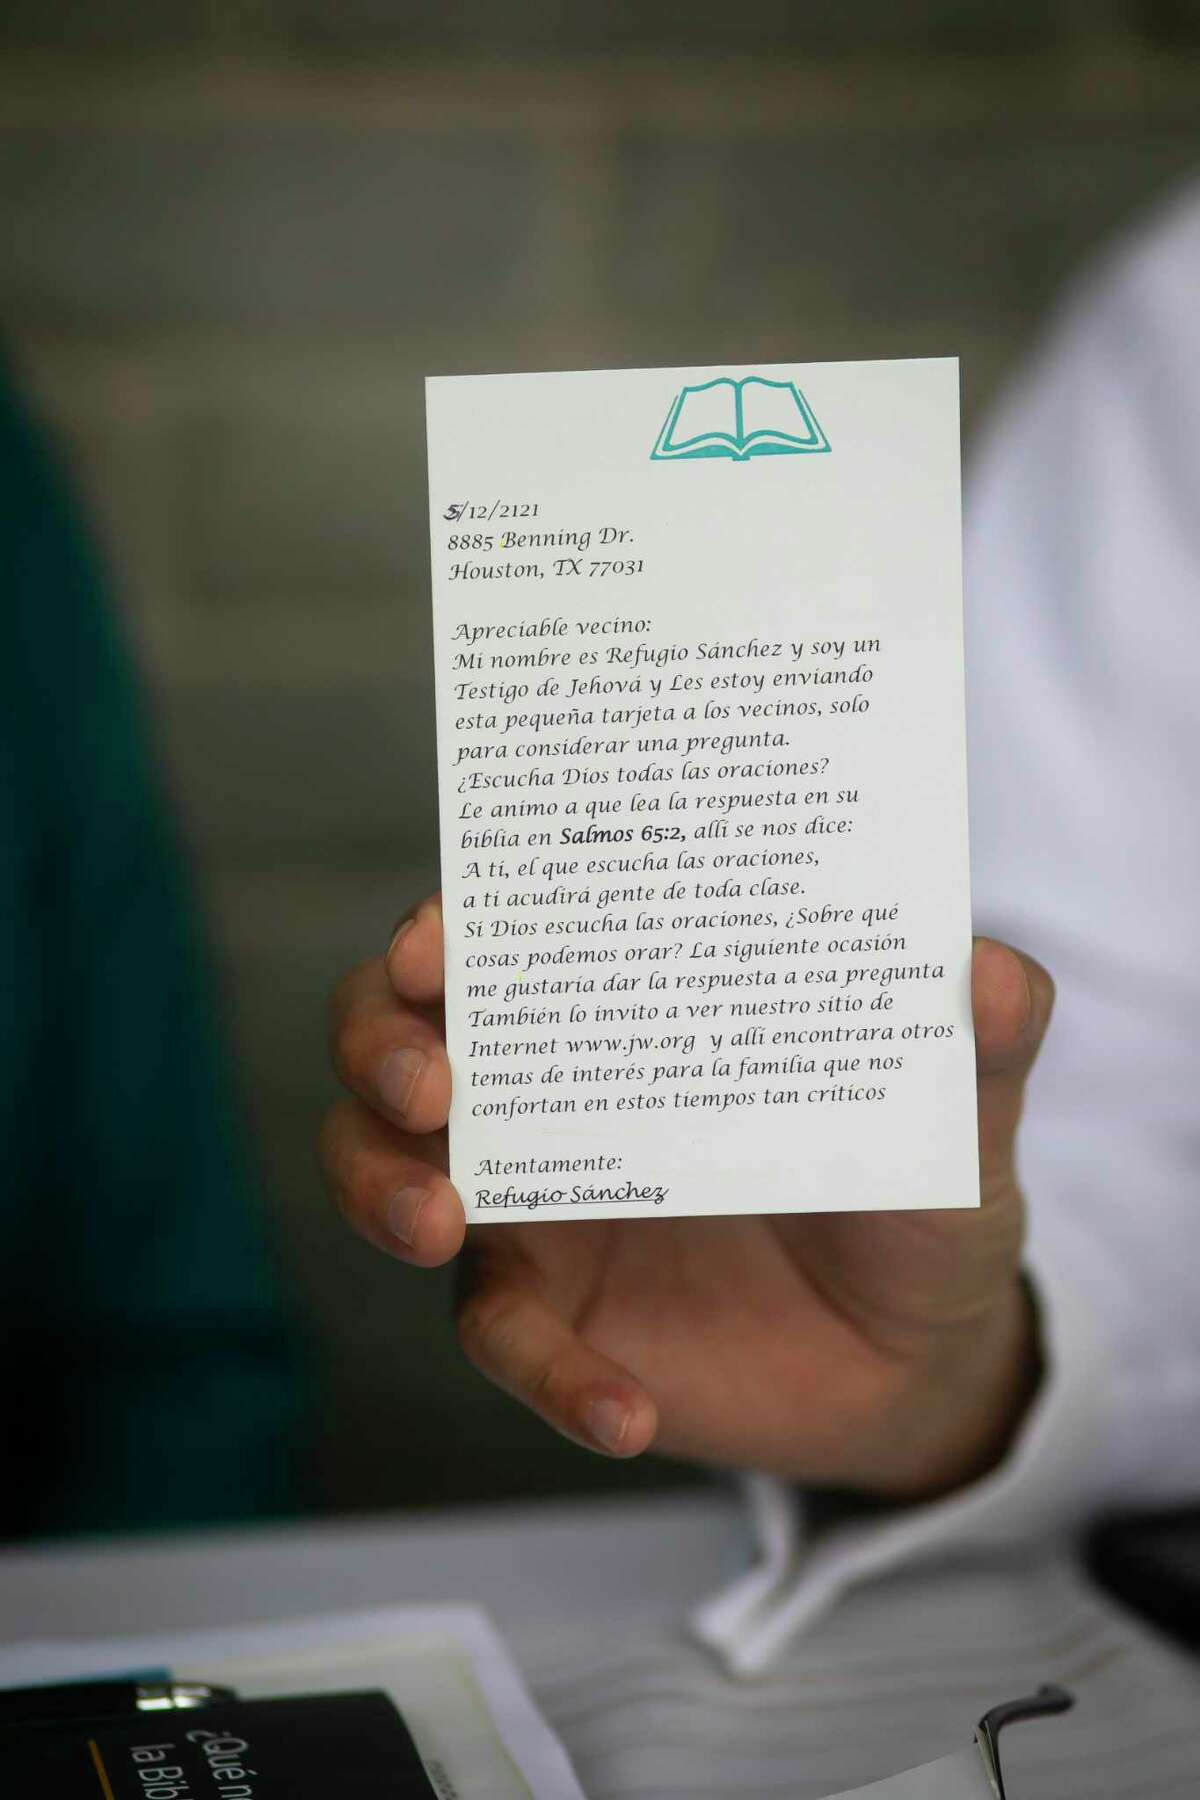 Refugio Sanchez holds up a copy of the postcard he sends prisoners as a part of his 18-year prison ministry on Monday, June 7, 2021. Sanchez and his wife Raquel, who are Jehovah's Witnesses, switched from meeting prisoners in-person to letter-writing during the pandemic.